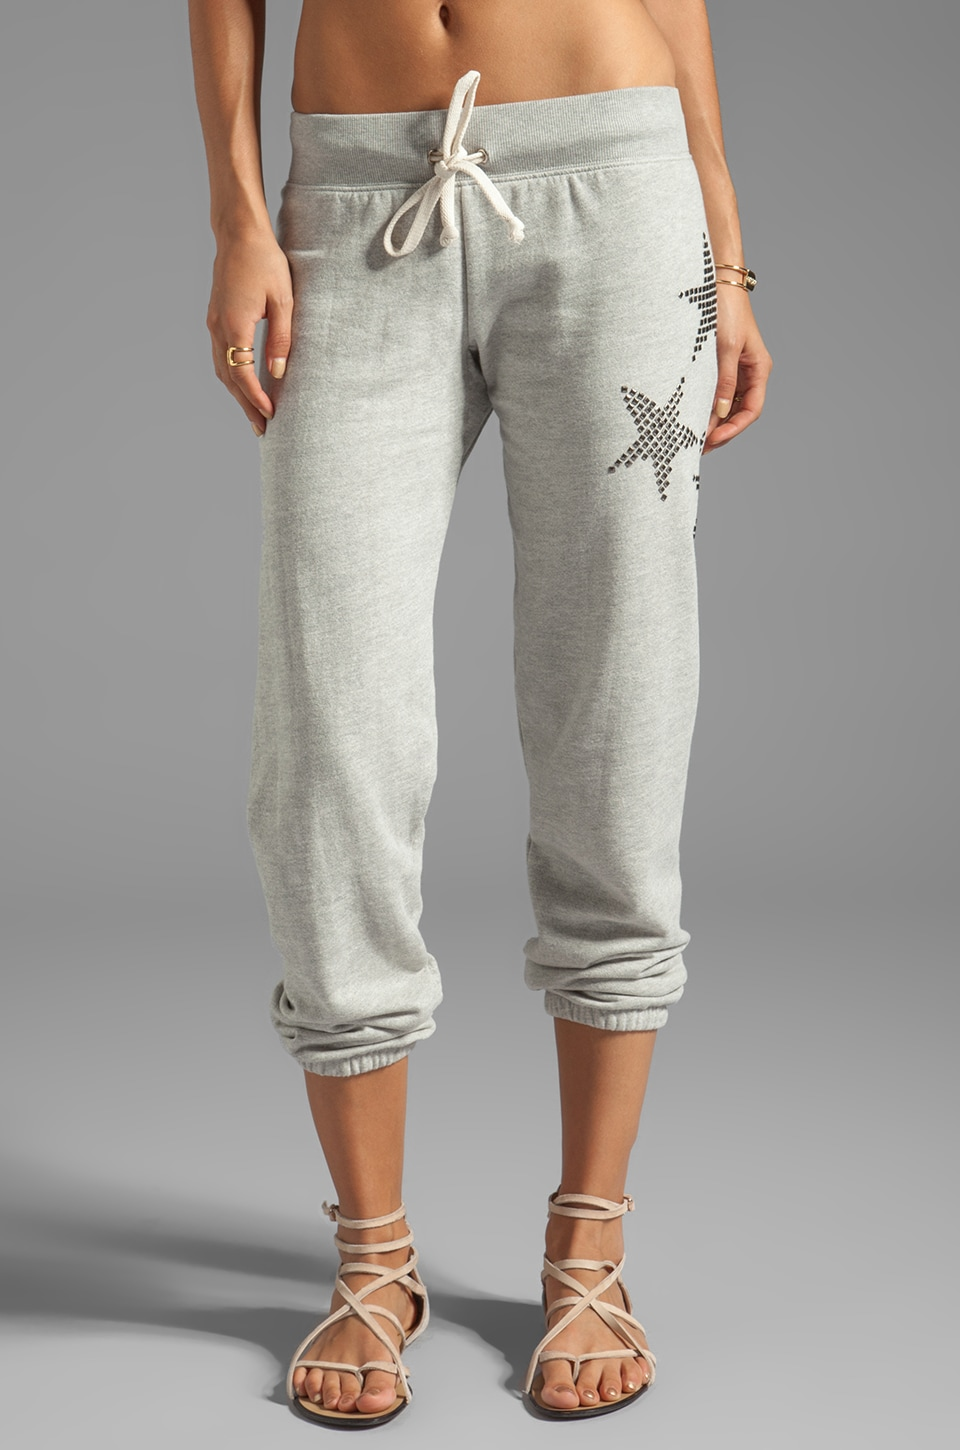 291 Stud Star Baggy Sweatpant in Heather Grey